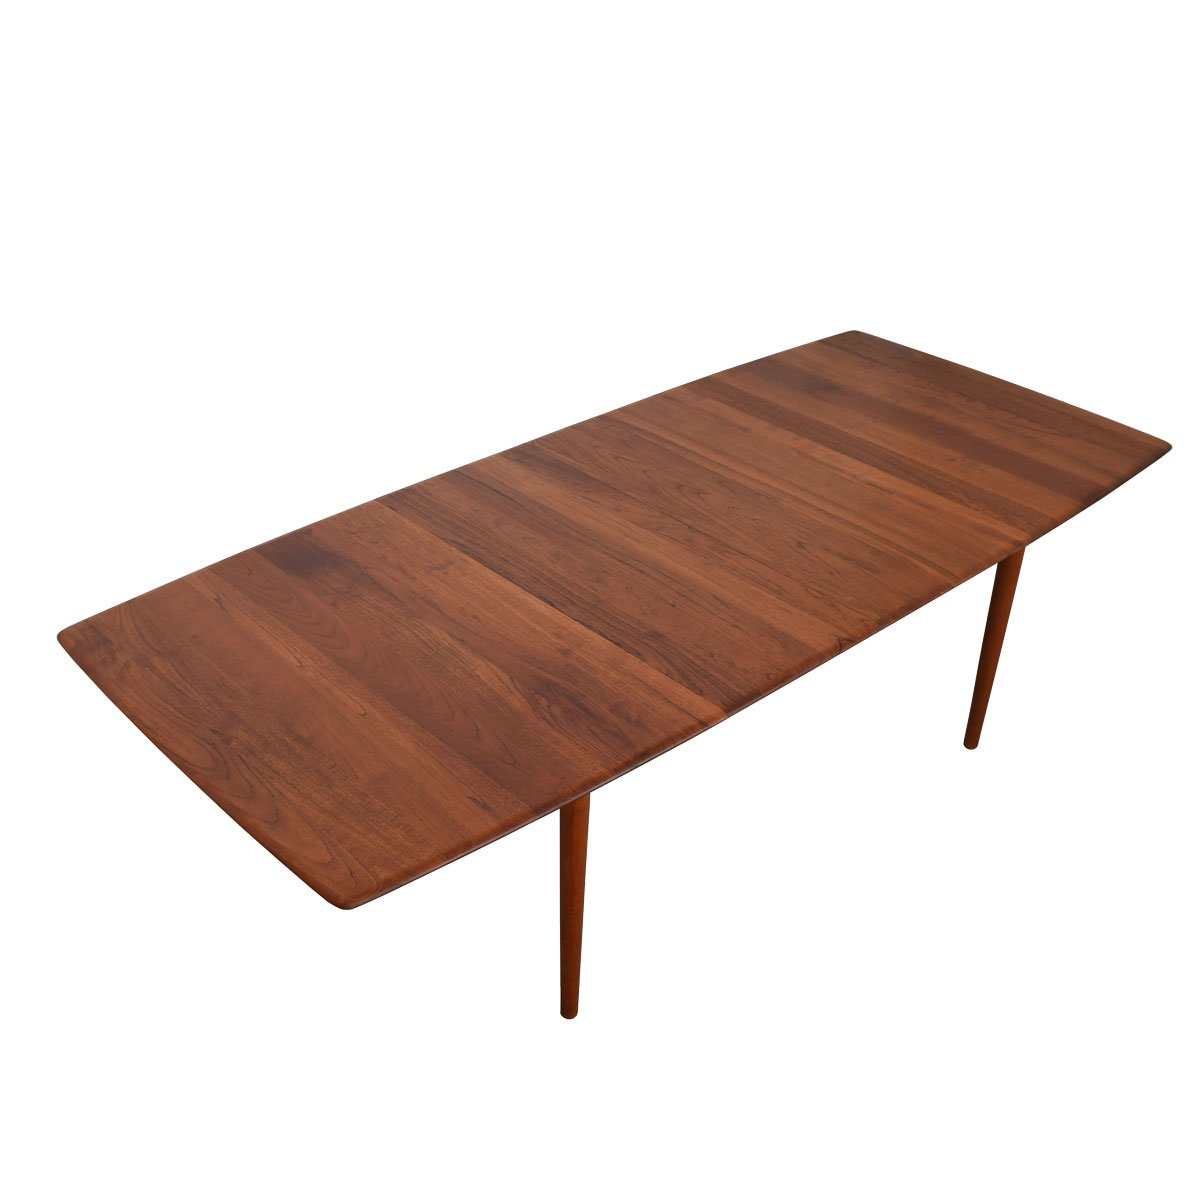 Peter Hvidt Smooth-Edge Solid Teak Expanding Dinging Table